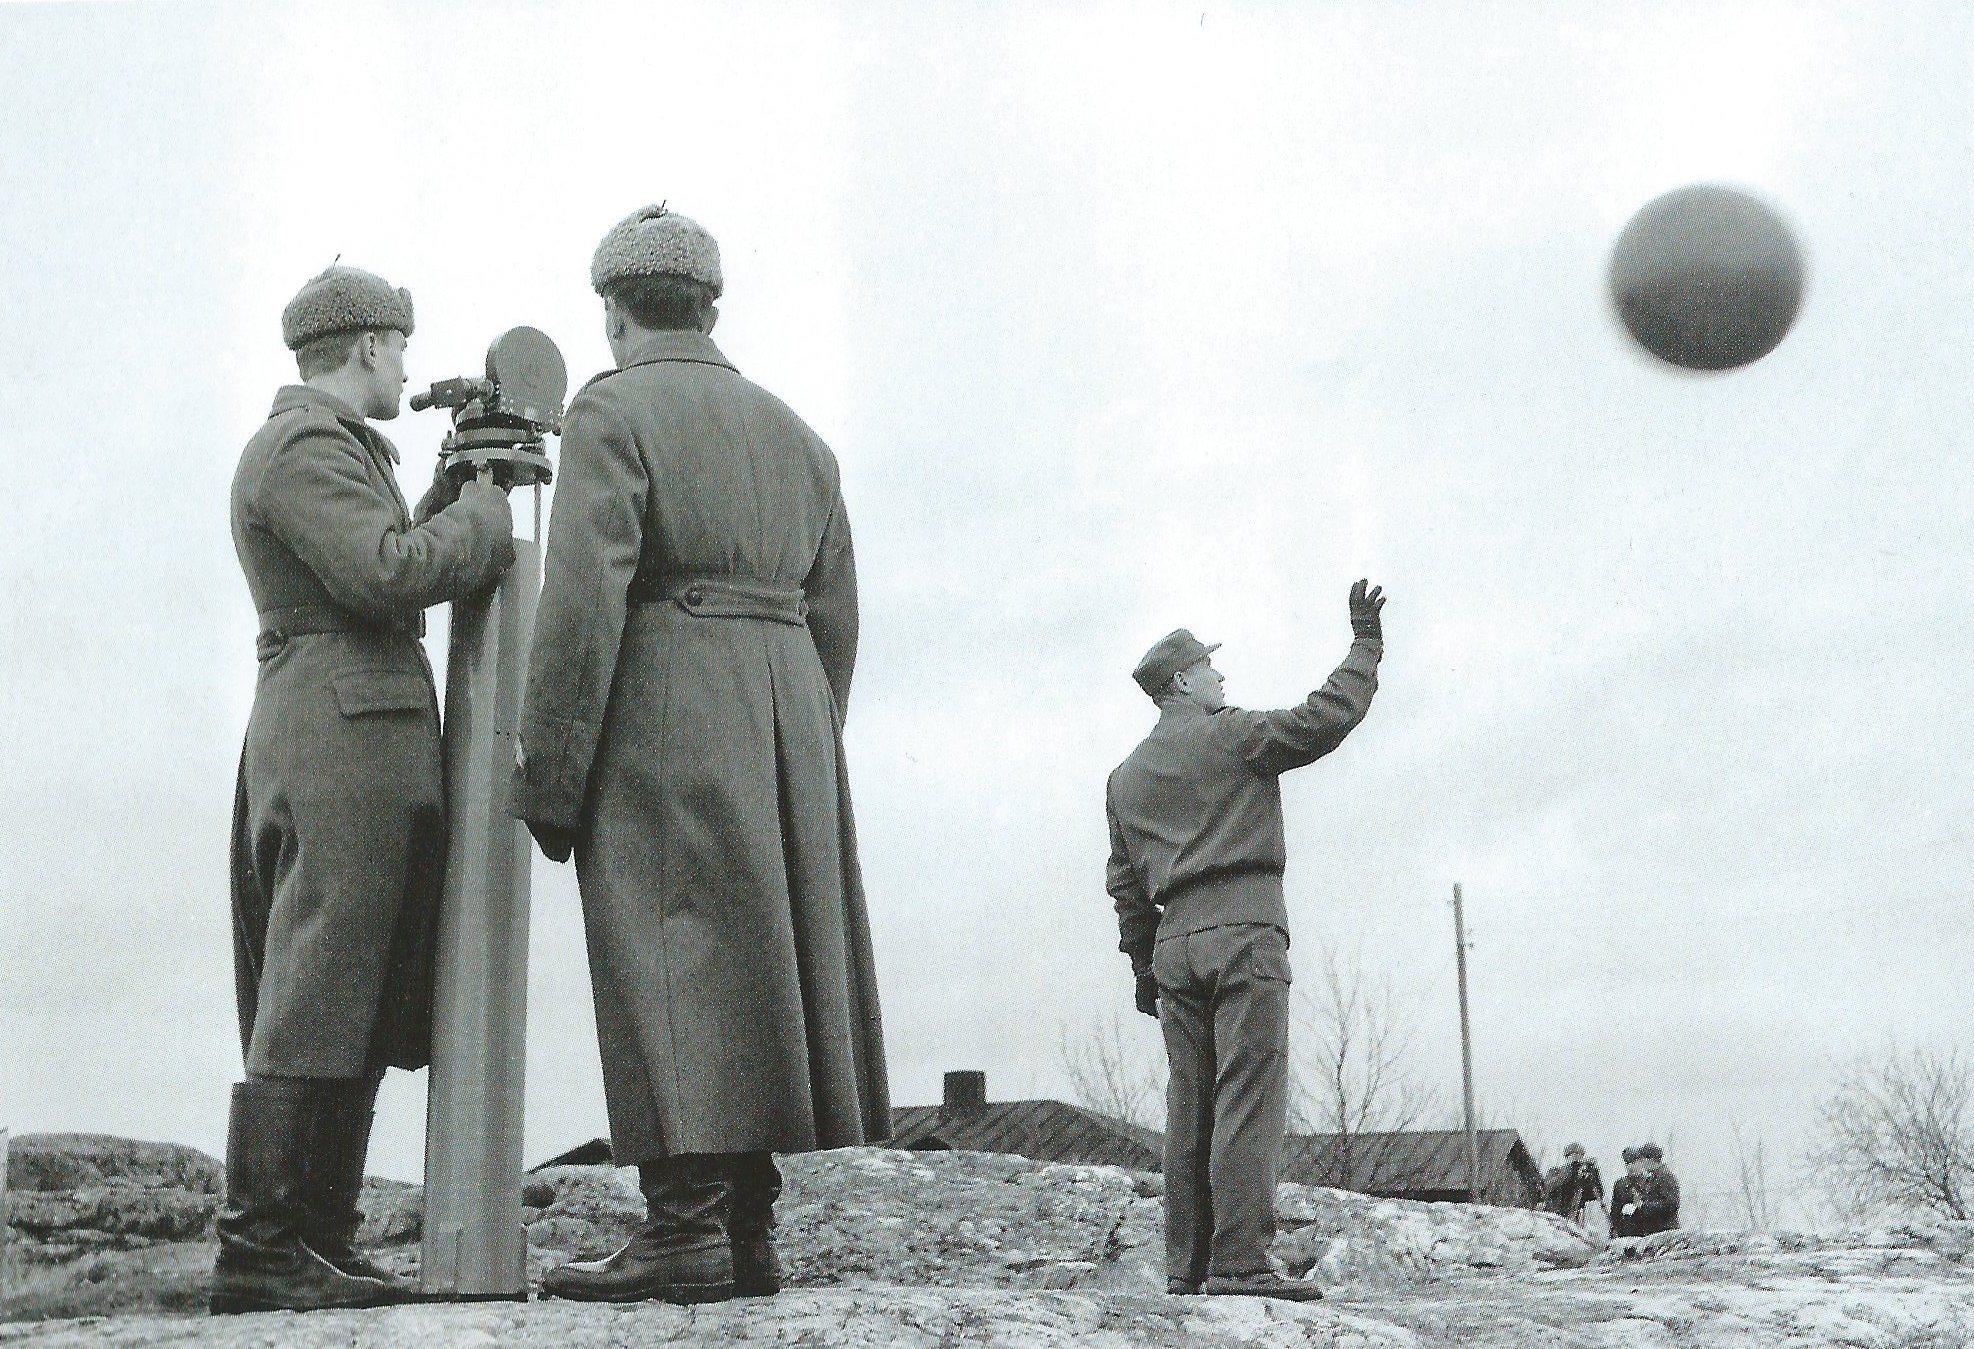 The launch of a weather balloon at the Vallisaari military meteorological station in 1962. According to Enqvist and Eskola, the task of the centre was to train conscripts as well as regular persons in the skills of meteorology.